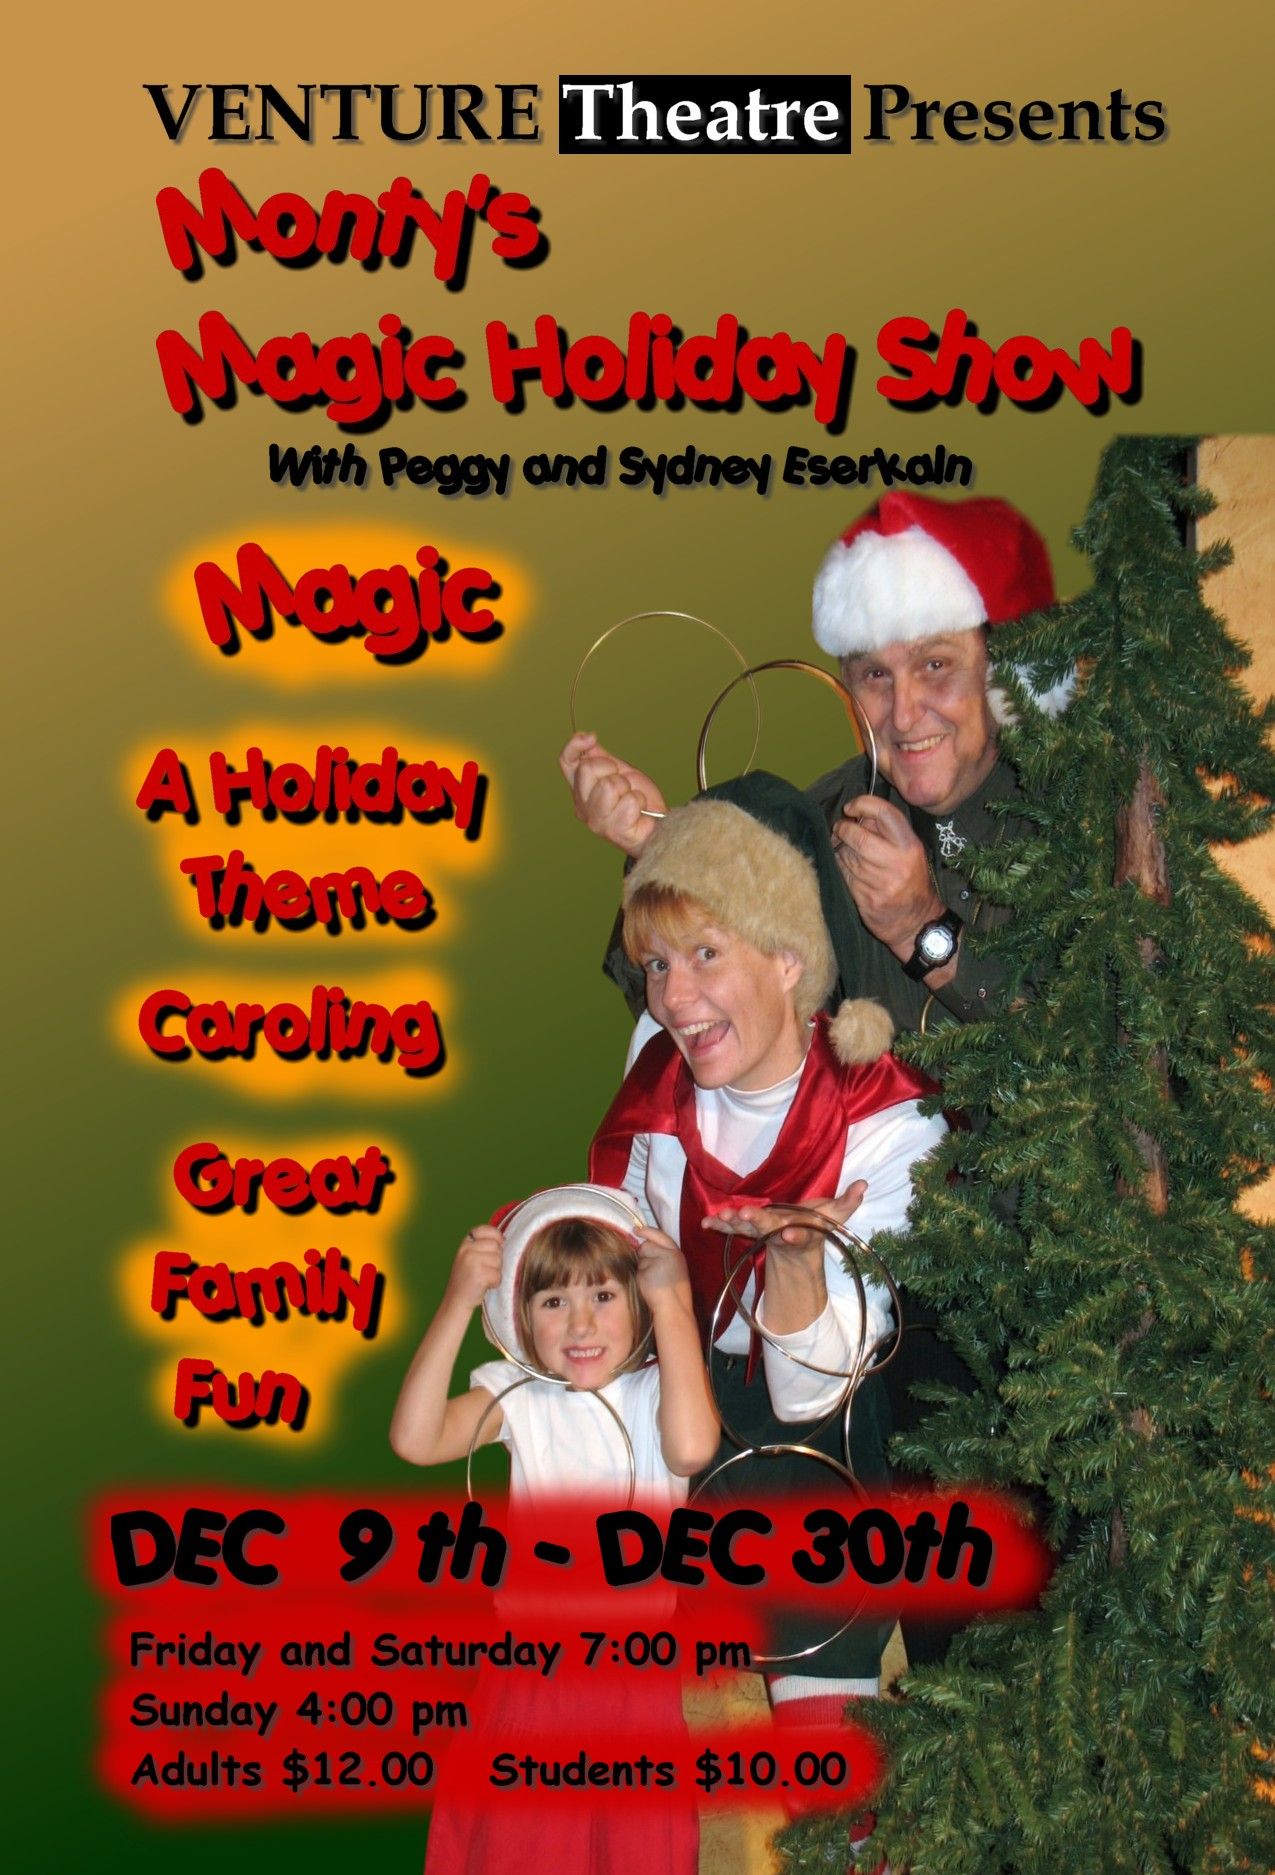 Posters from the past. A Wizard's Christmas 2007